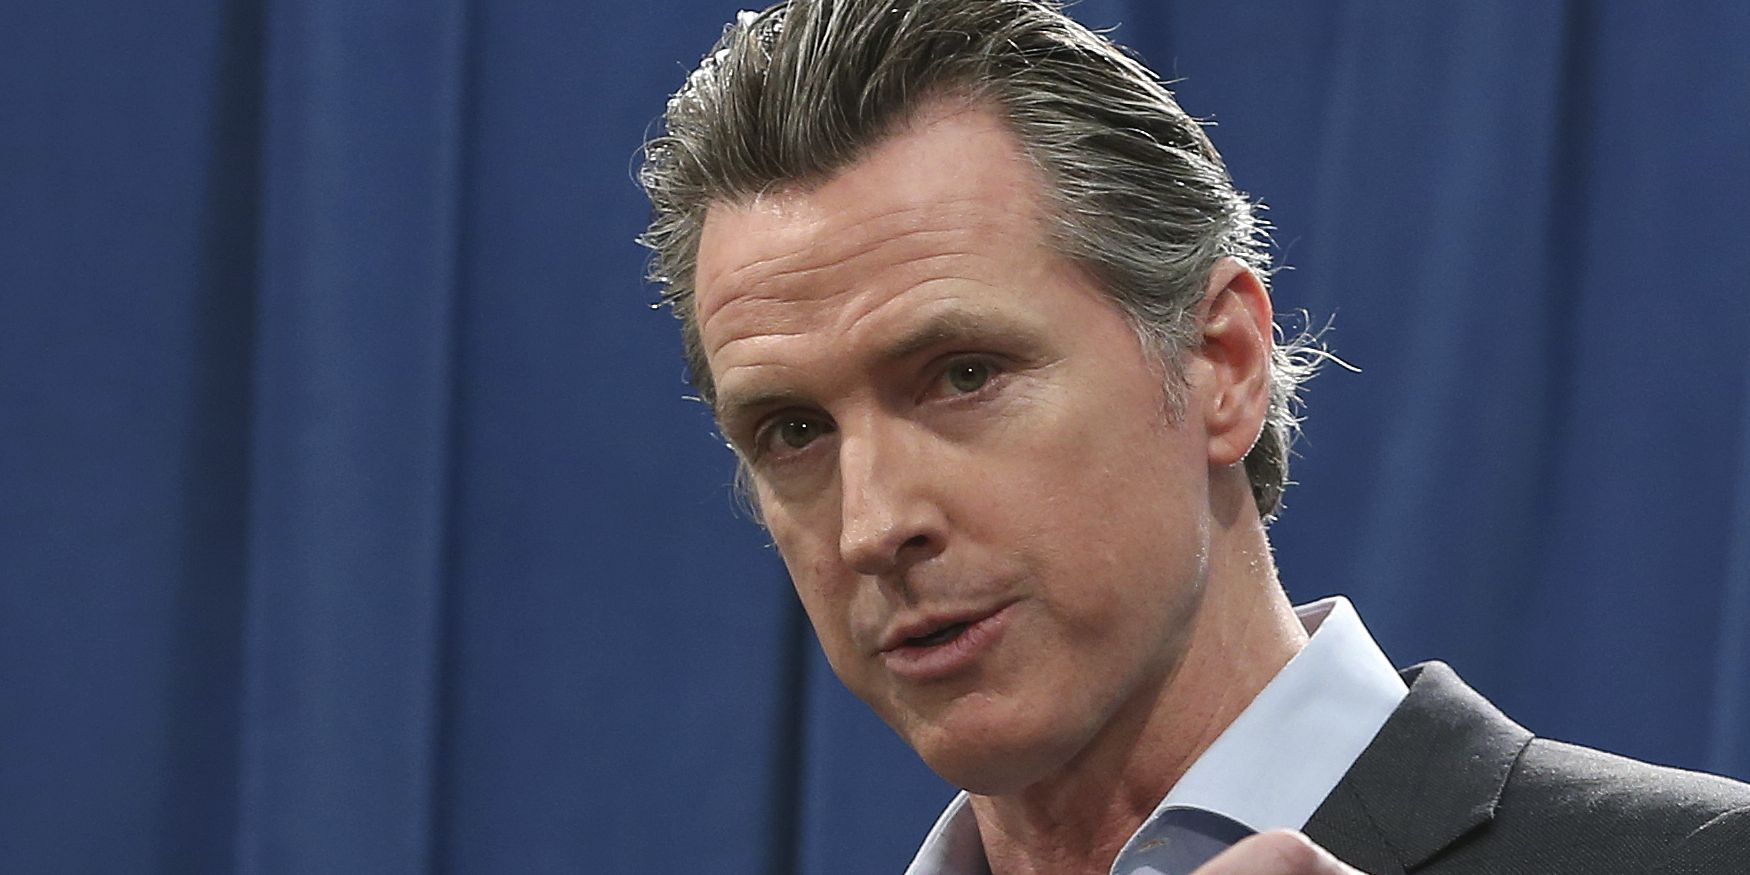 California governor: Executions have no place in 'civilized society,' 737 to be halted